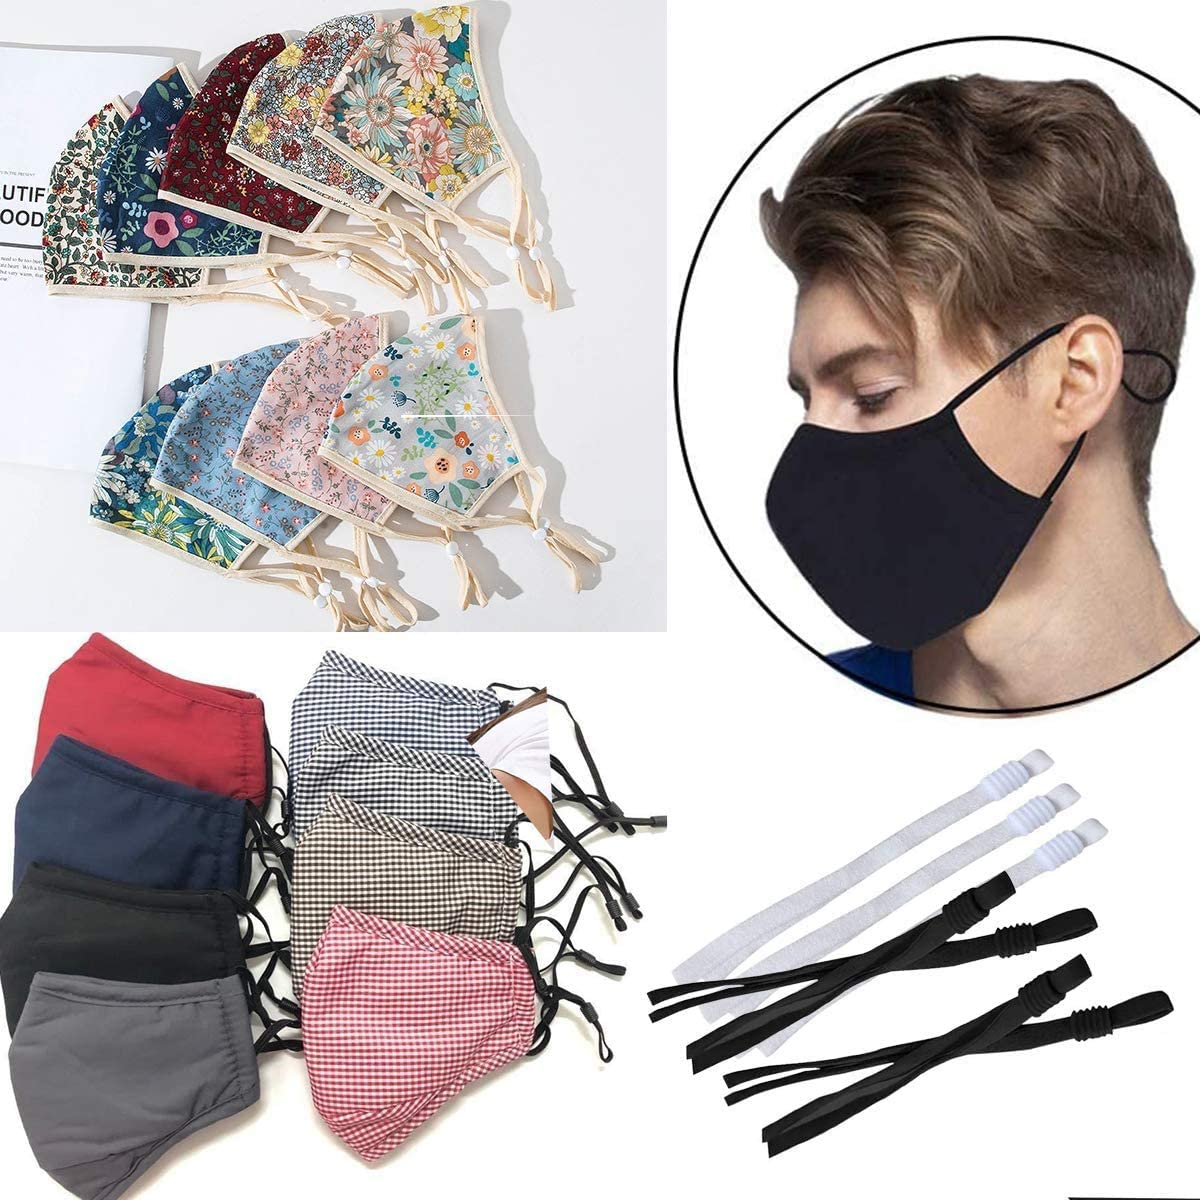 100 PC Elastic Band Cord for Sewing Crafting with Adjustable Buckle Stretchy Mask Earloop Lanyard Earmuff Rope DIY Face Cover Making Supplies Black